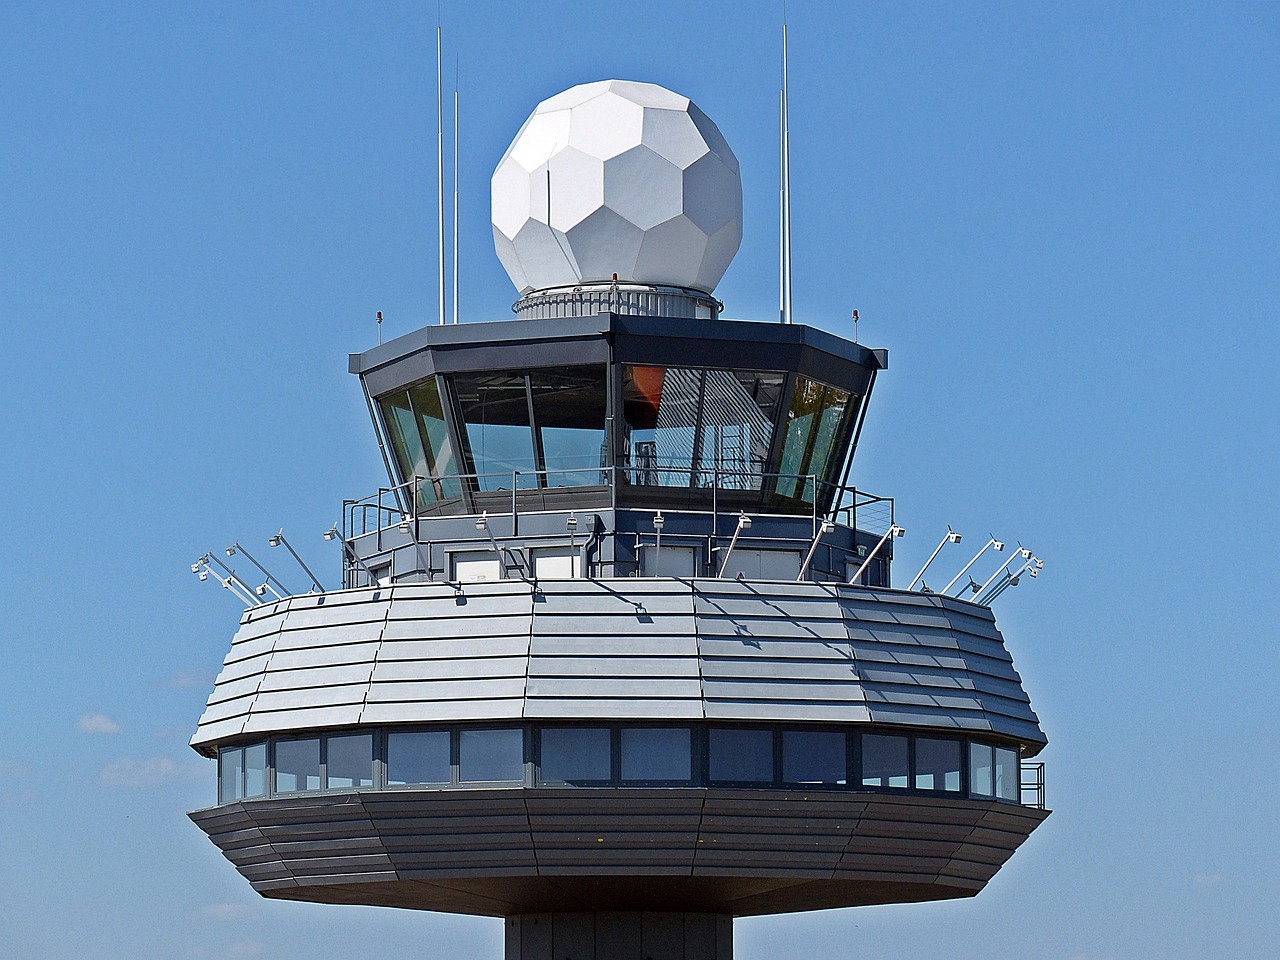 Air traffic controller salary in Nigeria